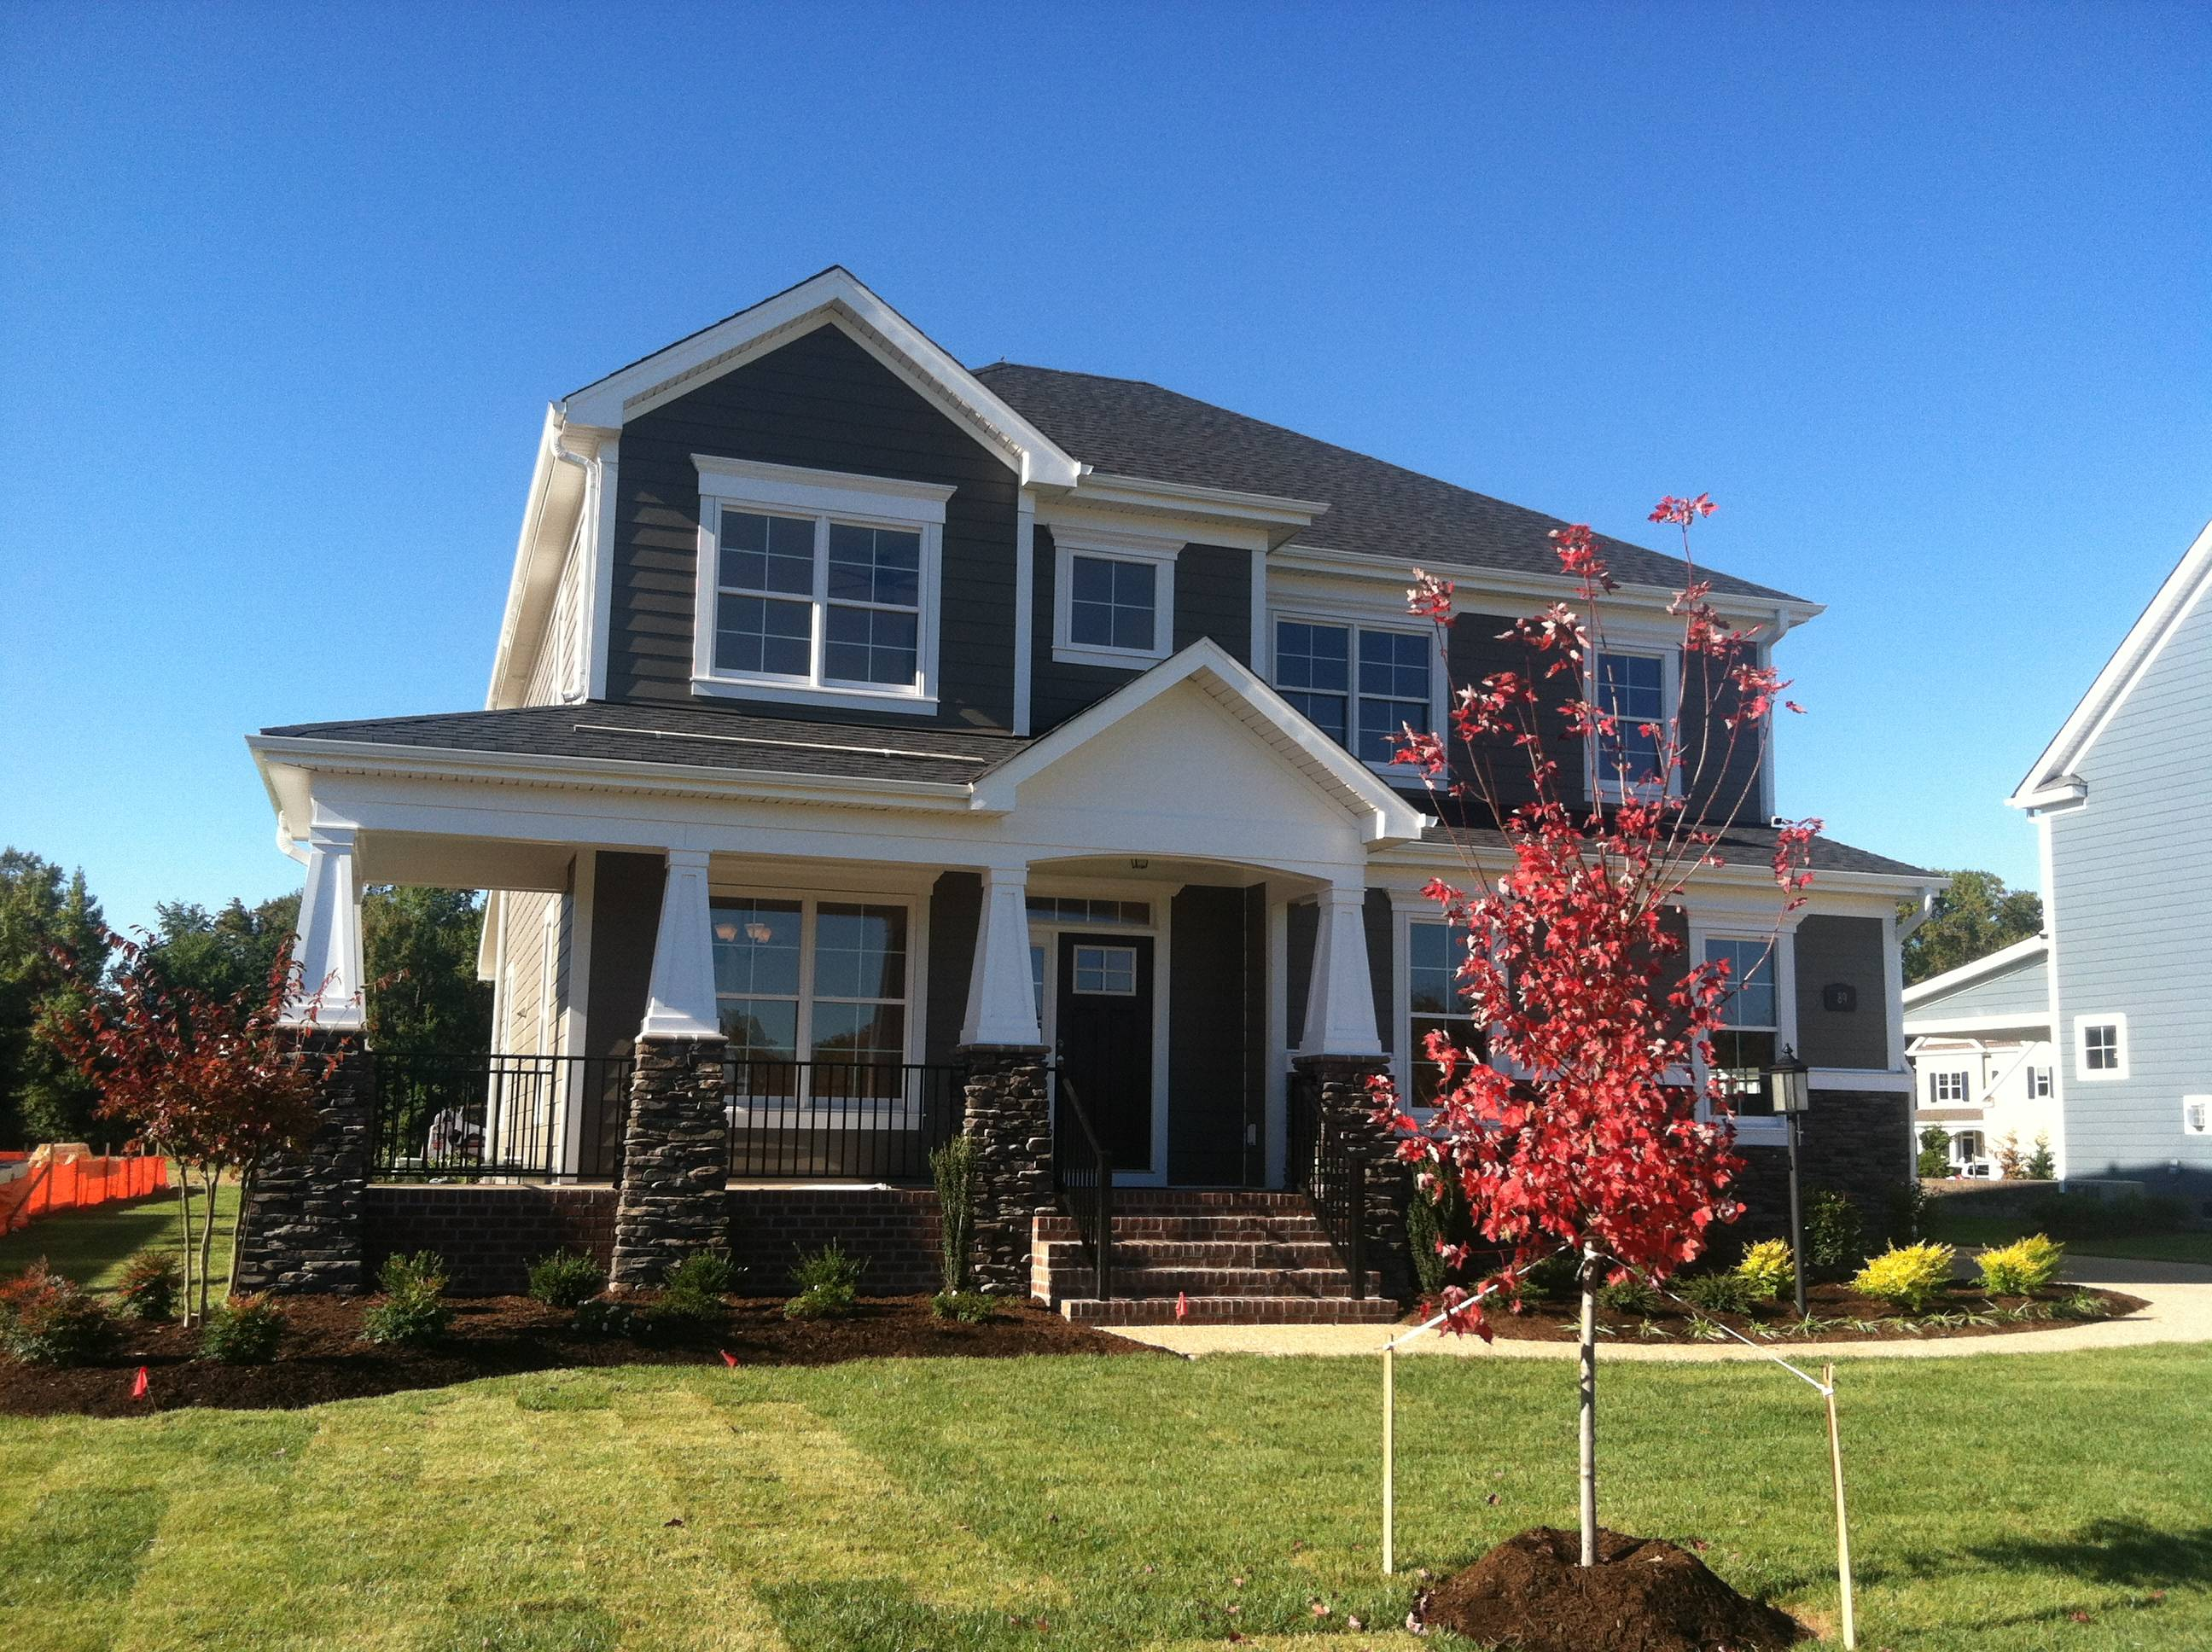 New model home by sasser construction founders pointe for New construction craftsman homes